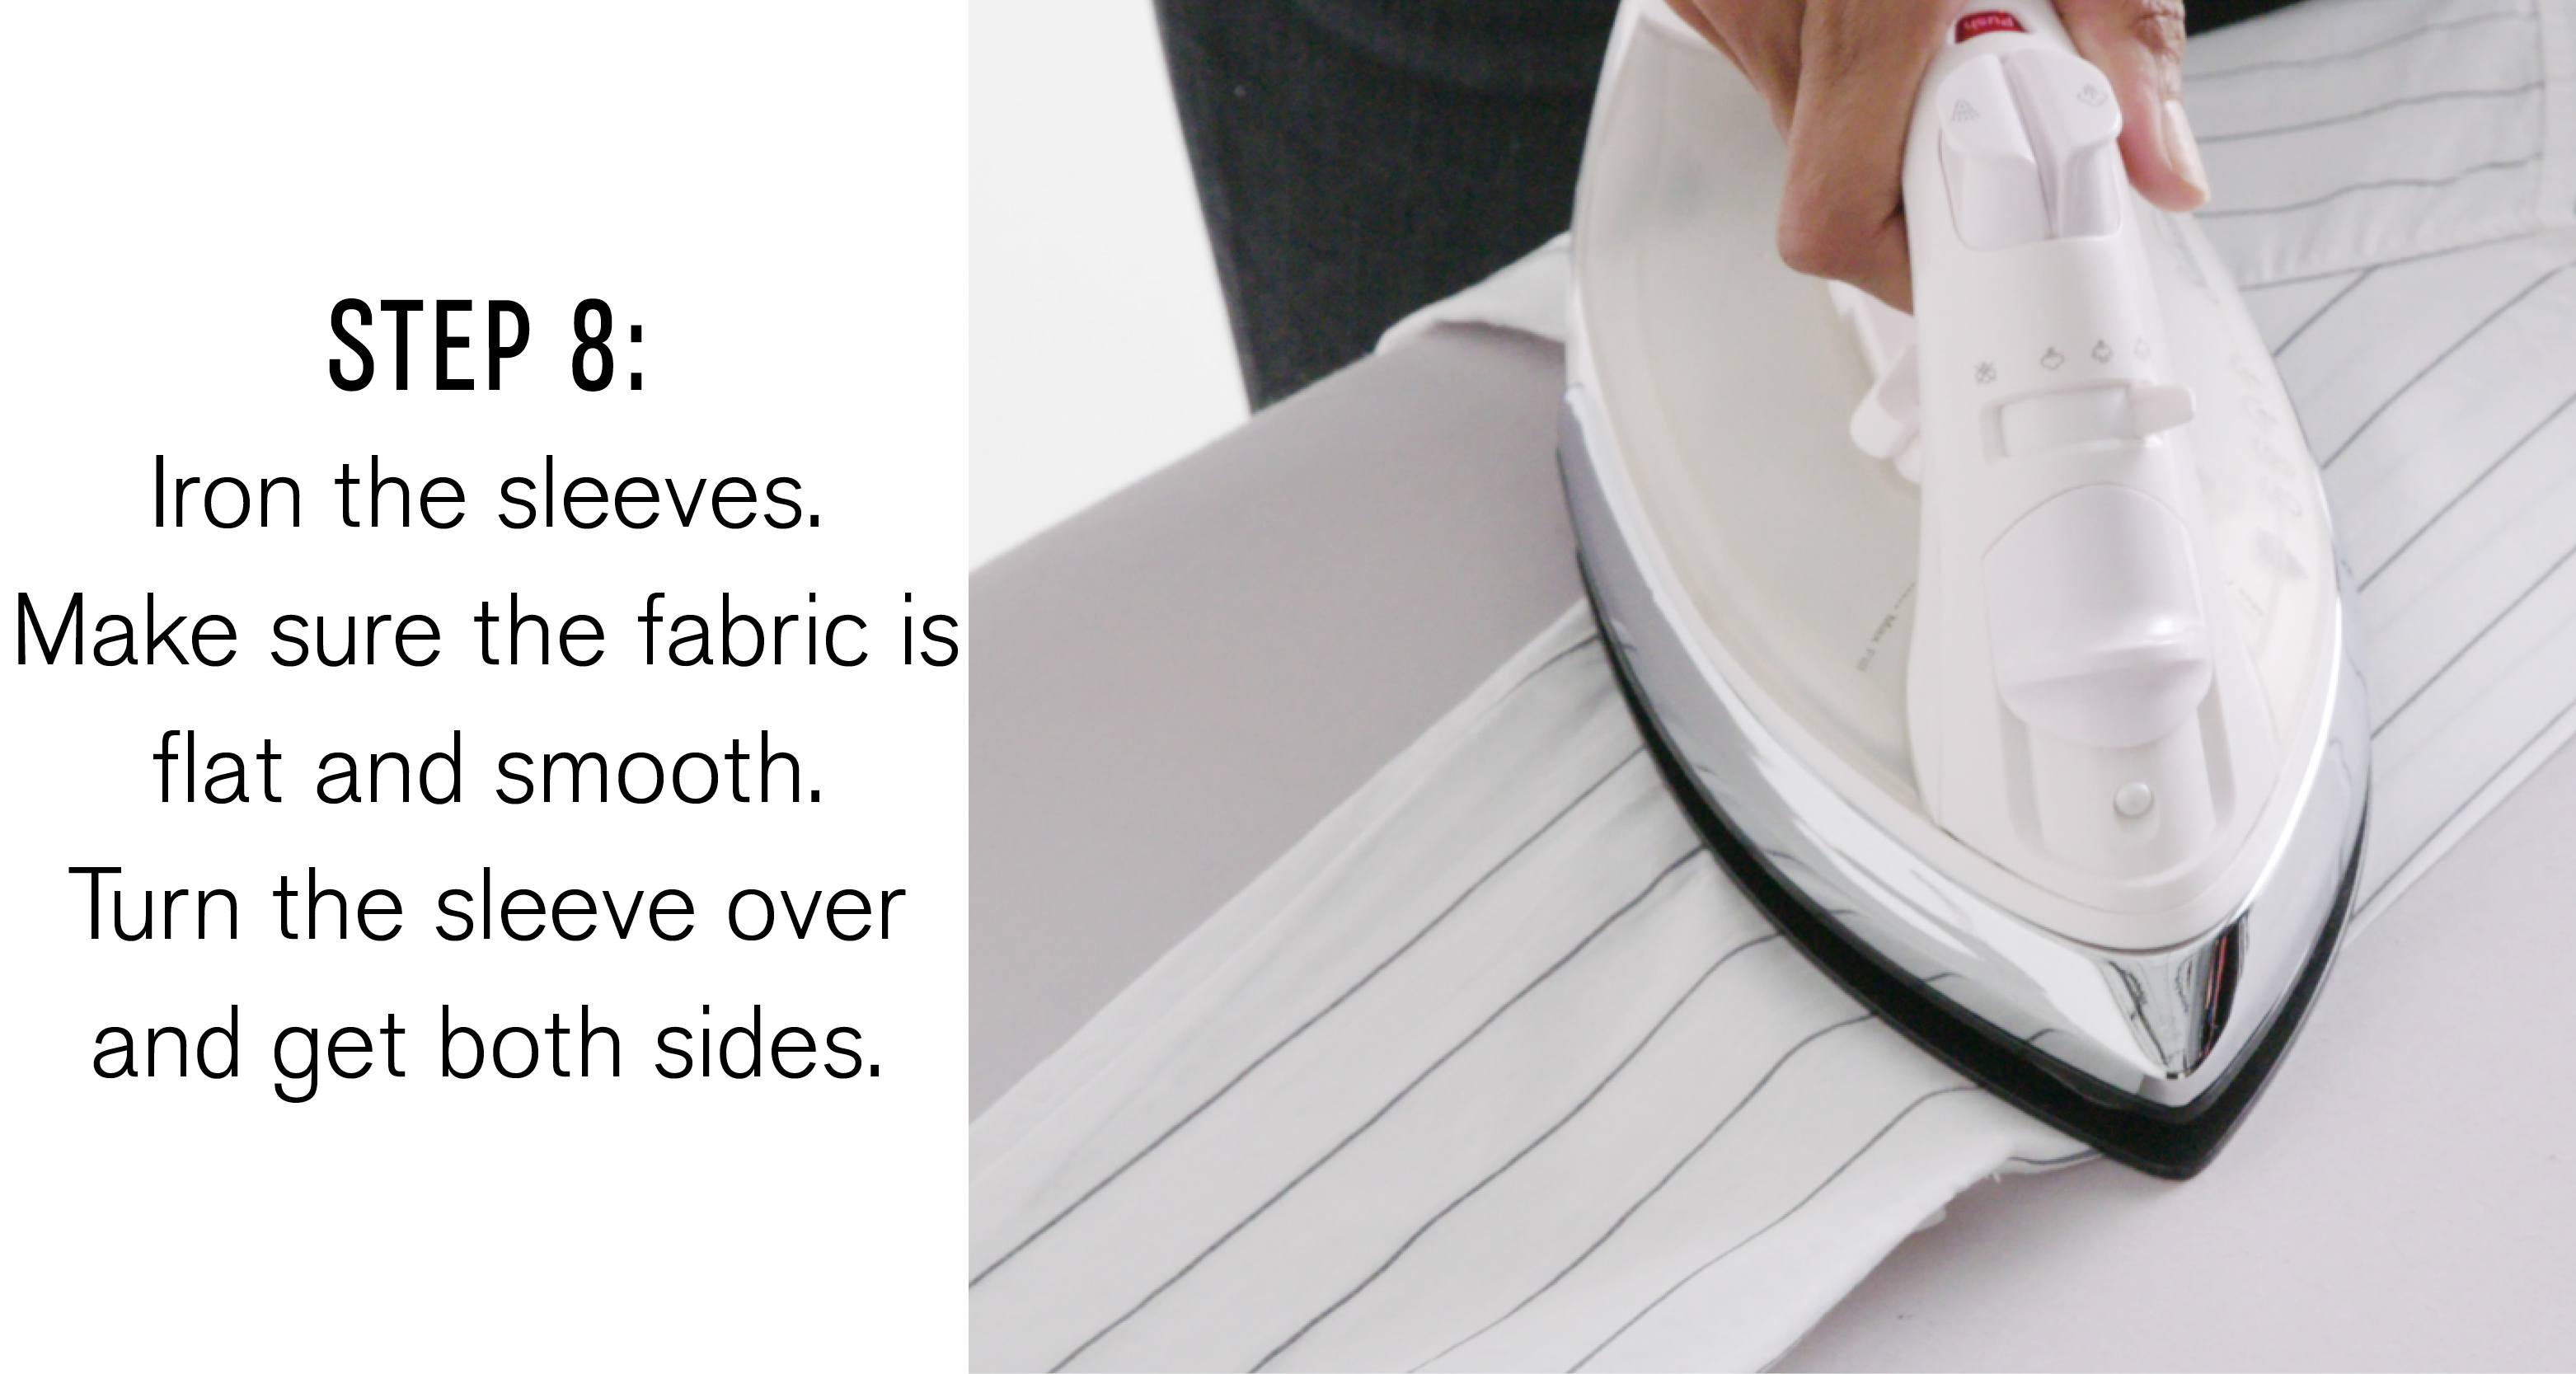 step-eight-iron-the-sleeves-make-sure-the-fabric-is-flat-and-smooth-turn-the-sleeve-over-and-get-both-sides